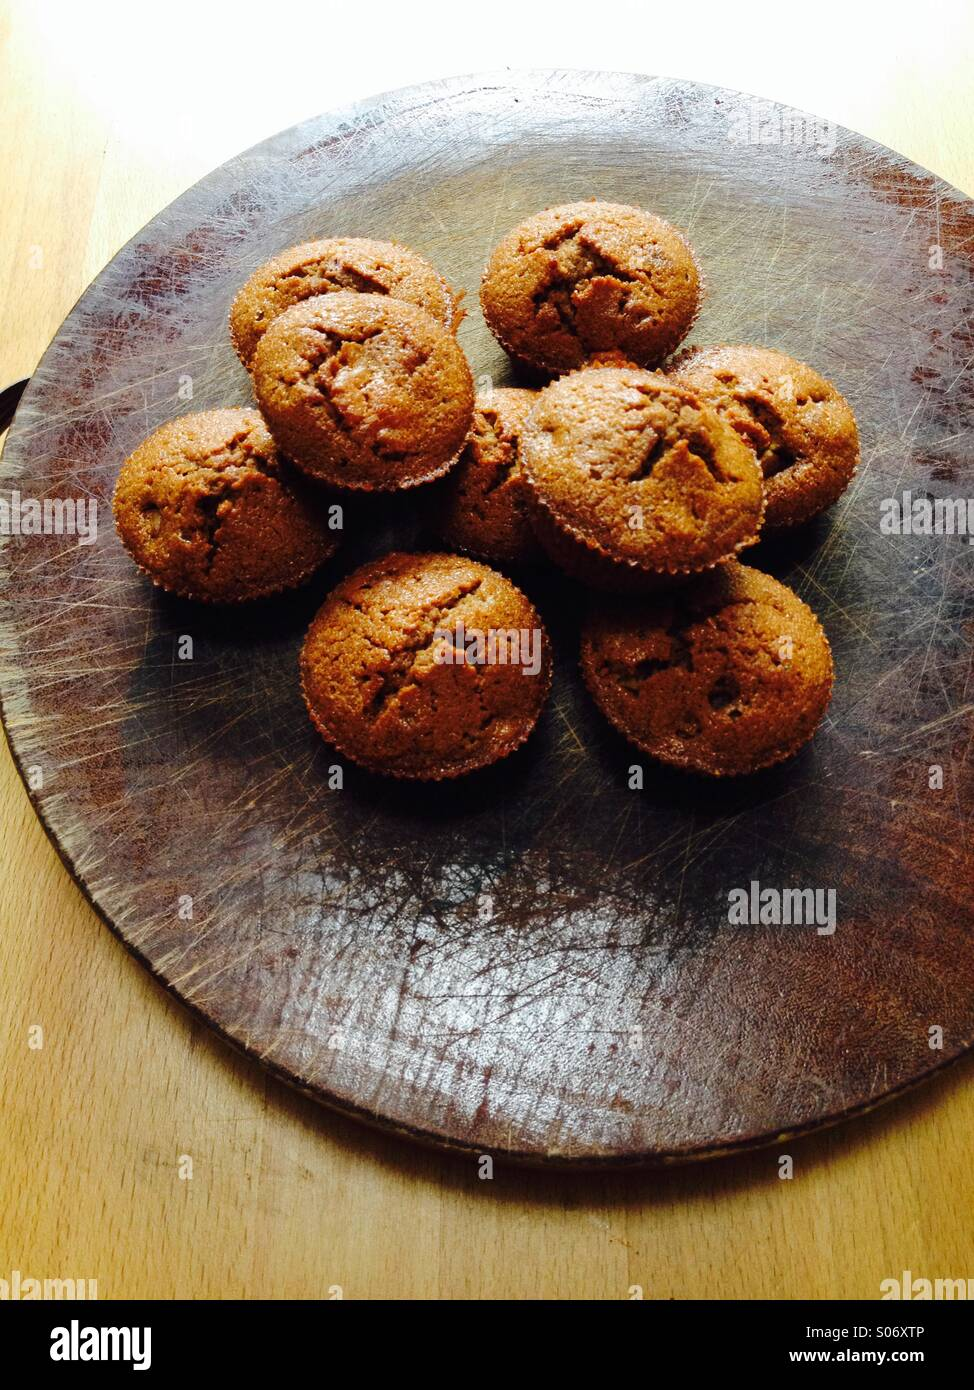 Home made coffee flavoured cup cakes on traditional wood background - Stock Image